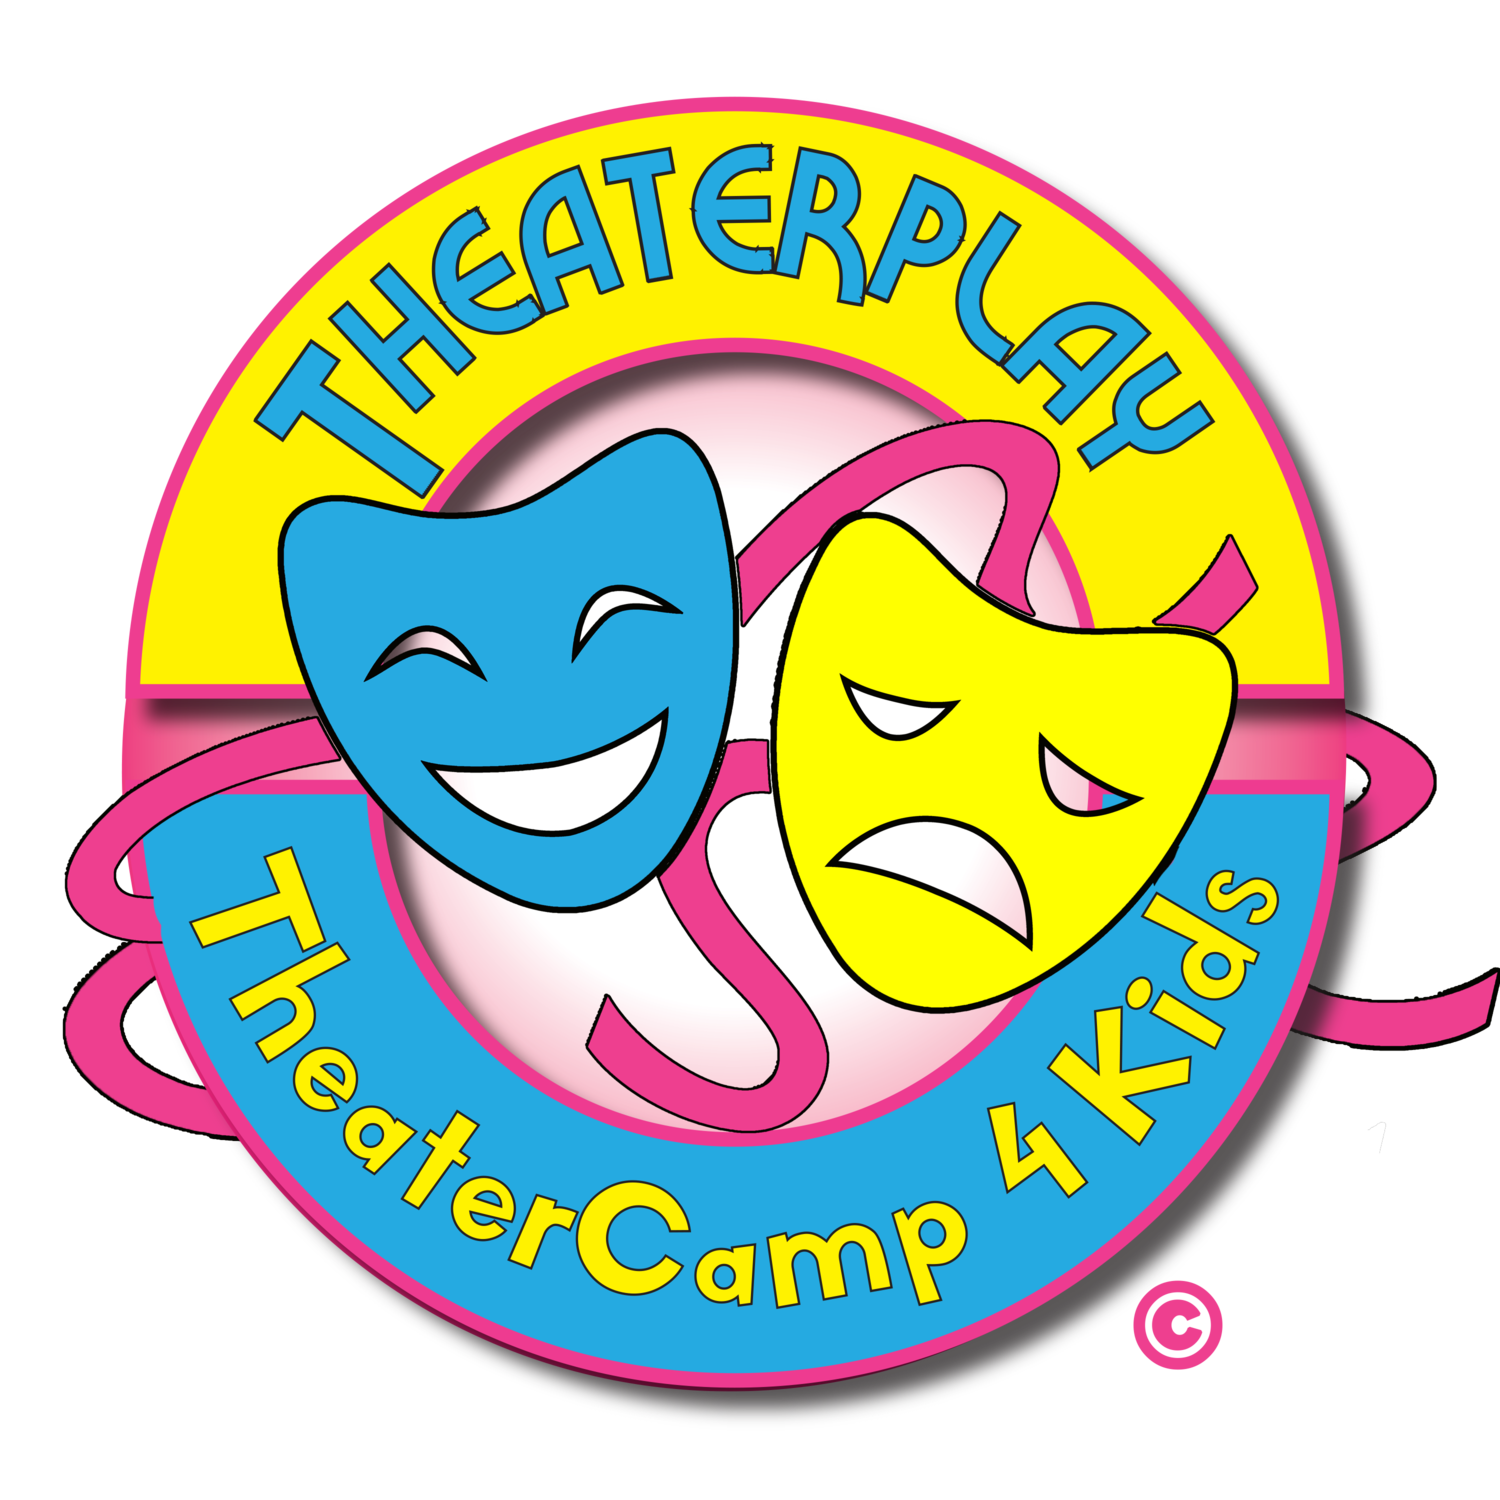 TheaterCamp 4 Kids & TheaterClass 4 Kids!